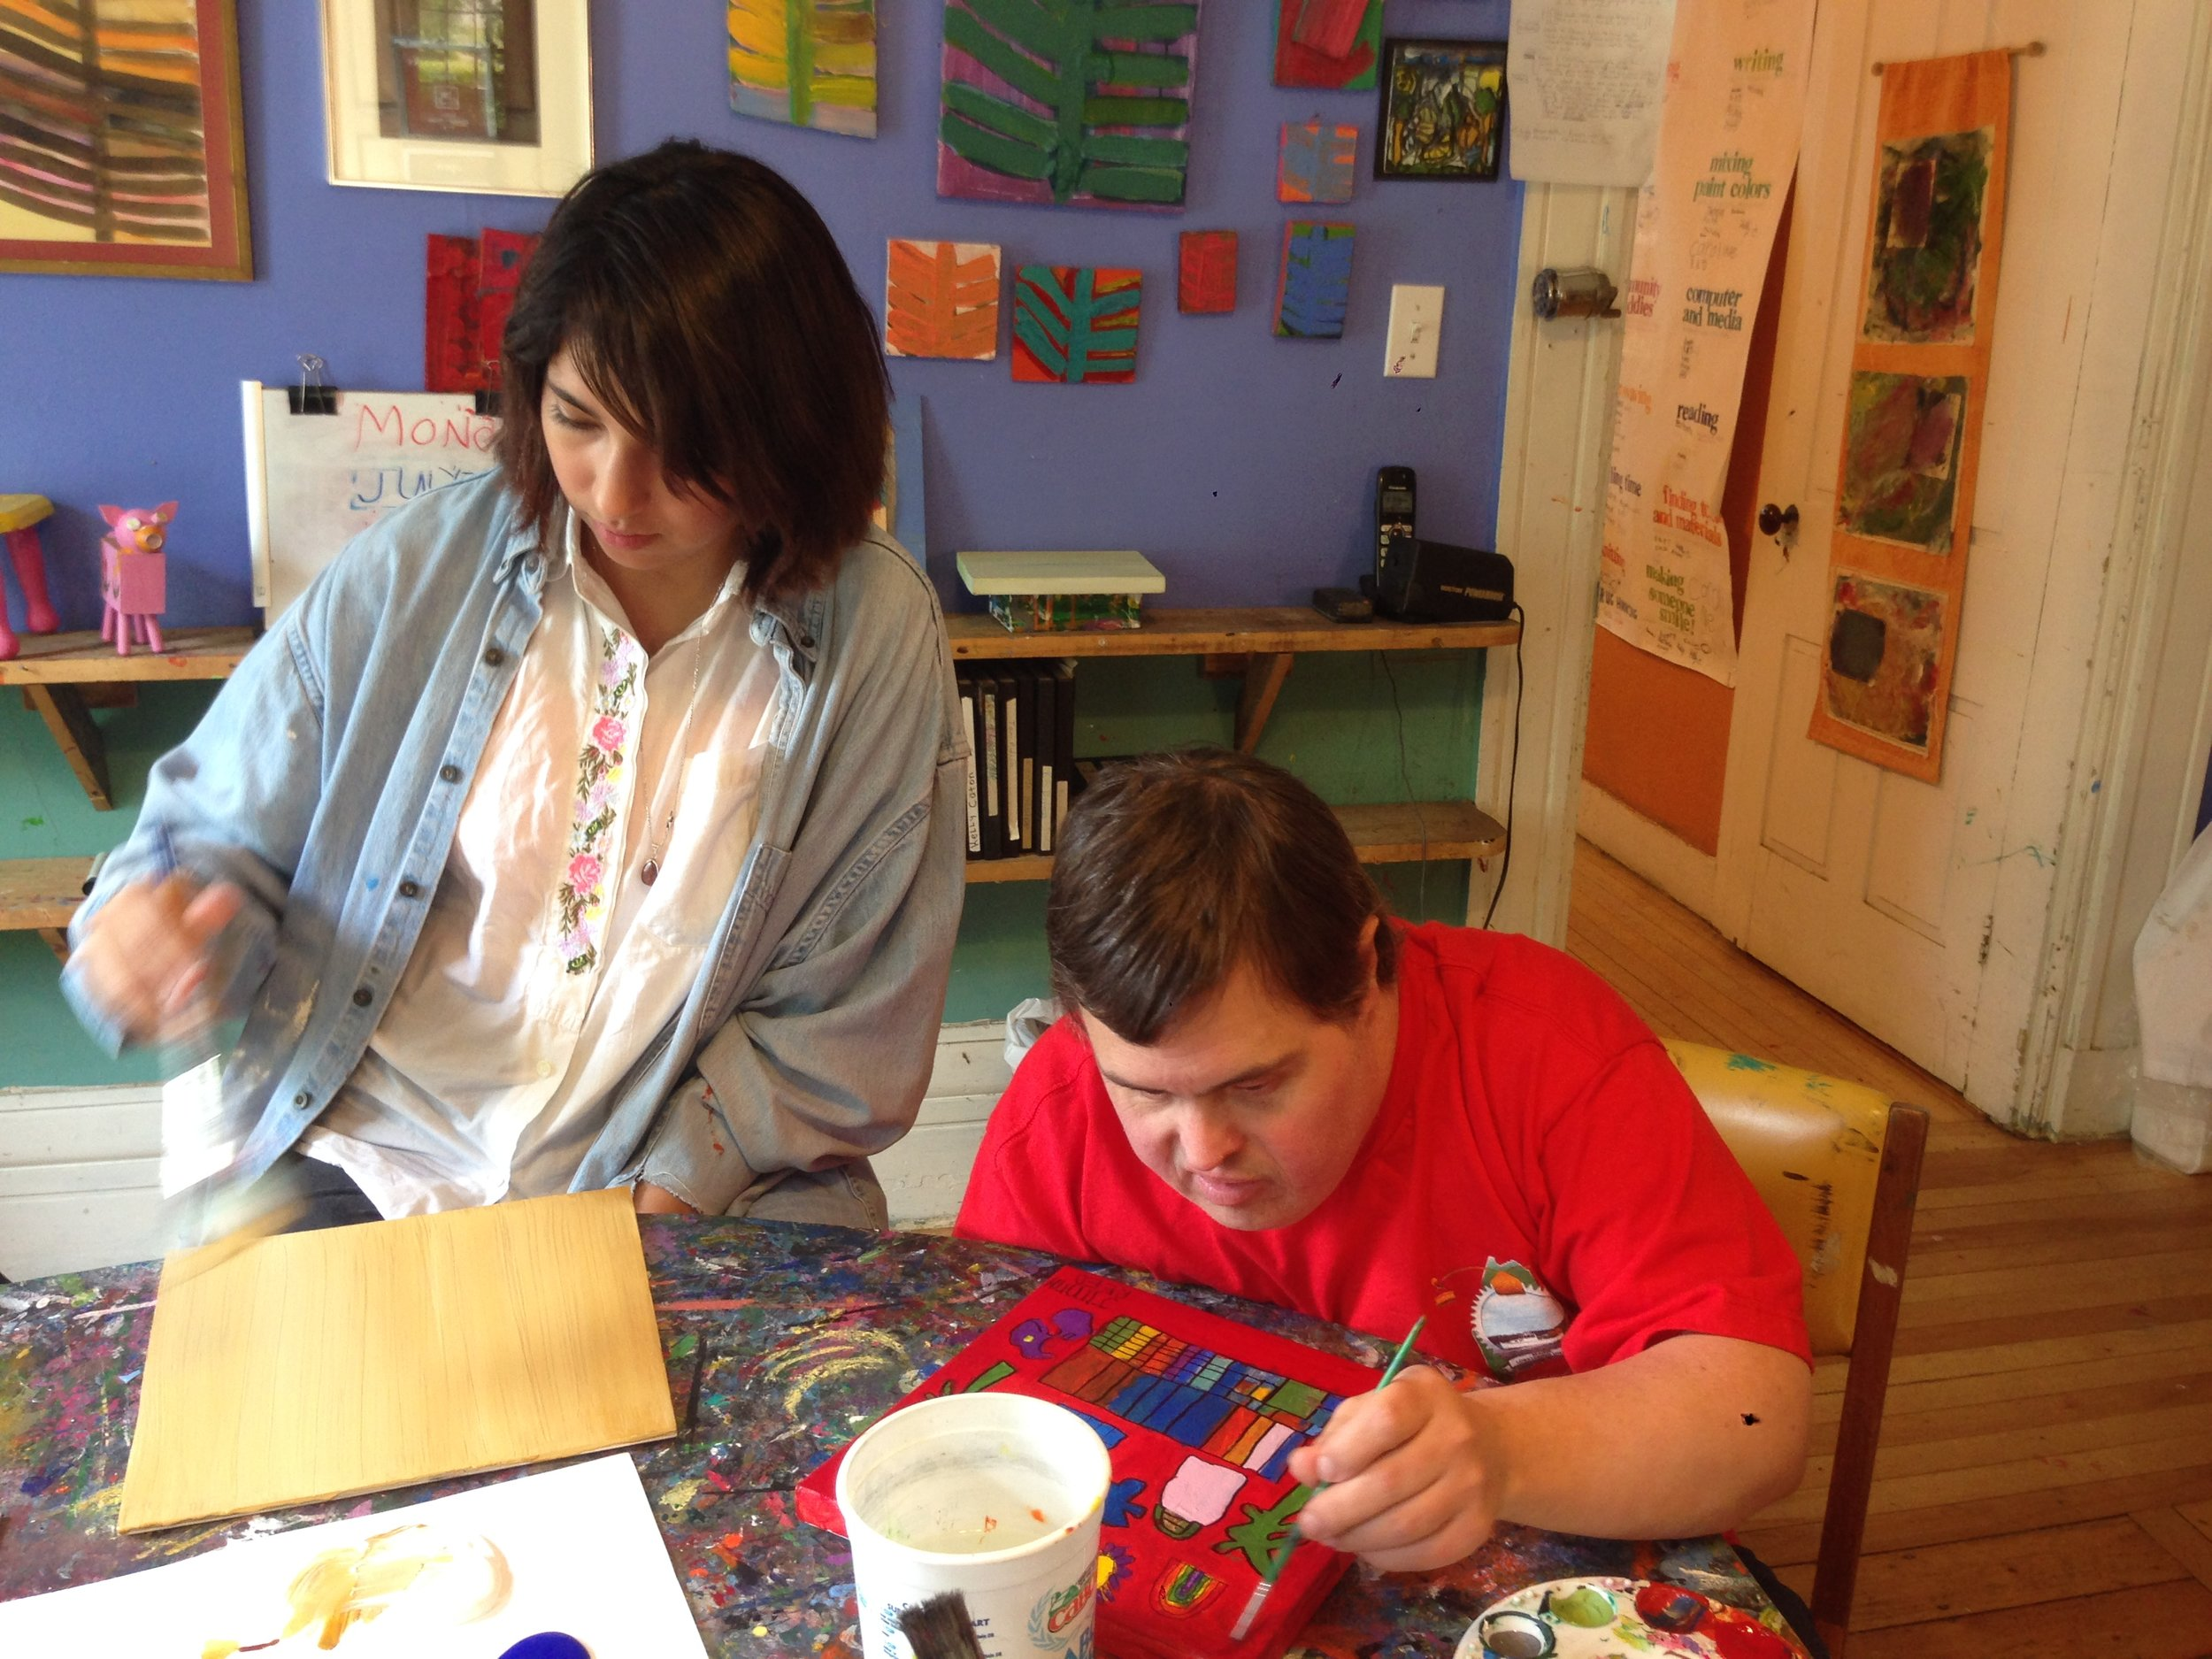 Celina and Jimmy work in the painting studio.